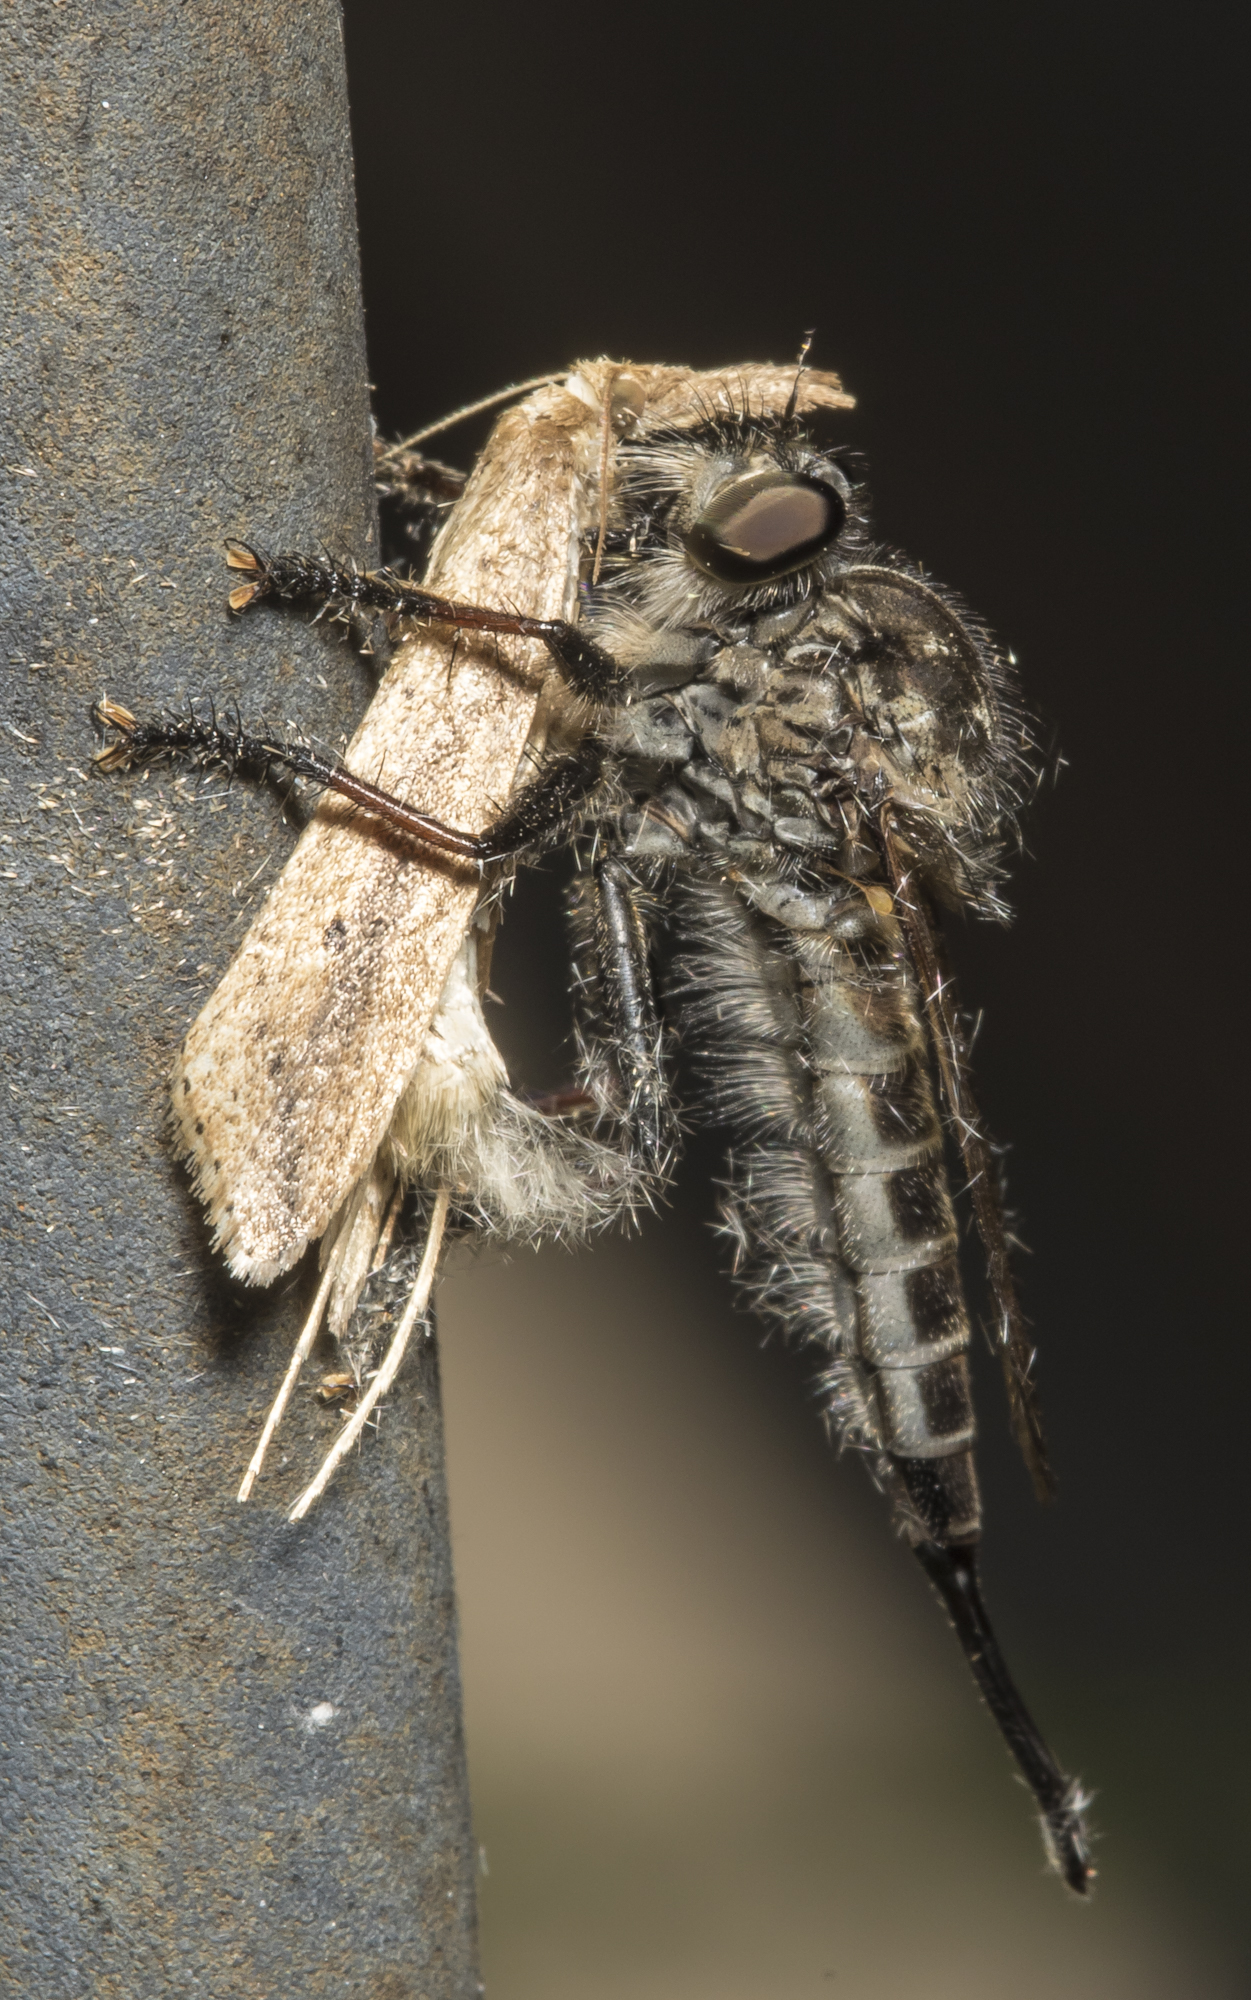 Robber fly and moth victim